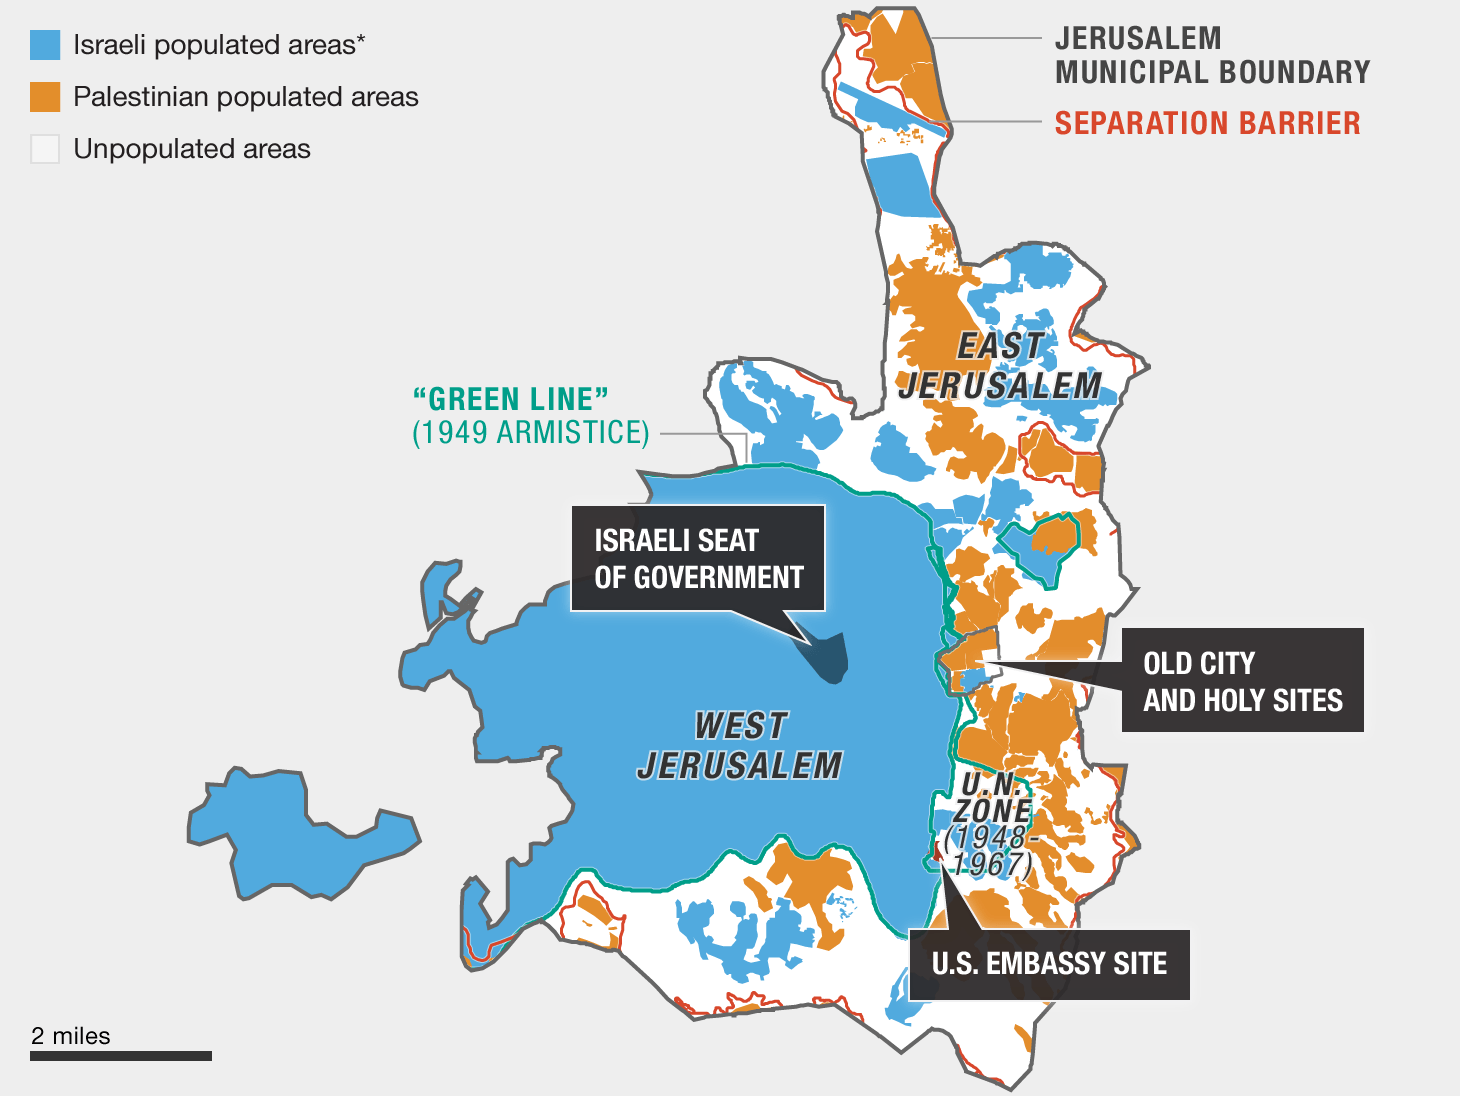 Note: * Blue shading in West Jerusalem reflects territory controlled by Israel since 1949. It does not denote specific populated or unpopulated areas.